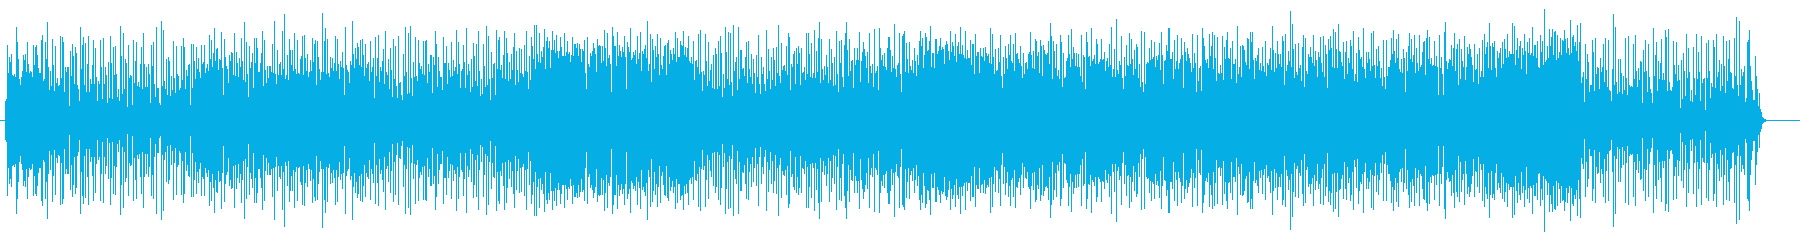 Game BGM comical electronic sound sound's reproduced waveform